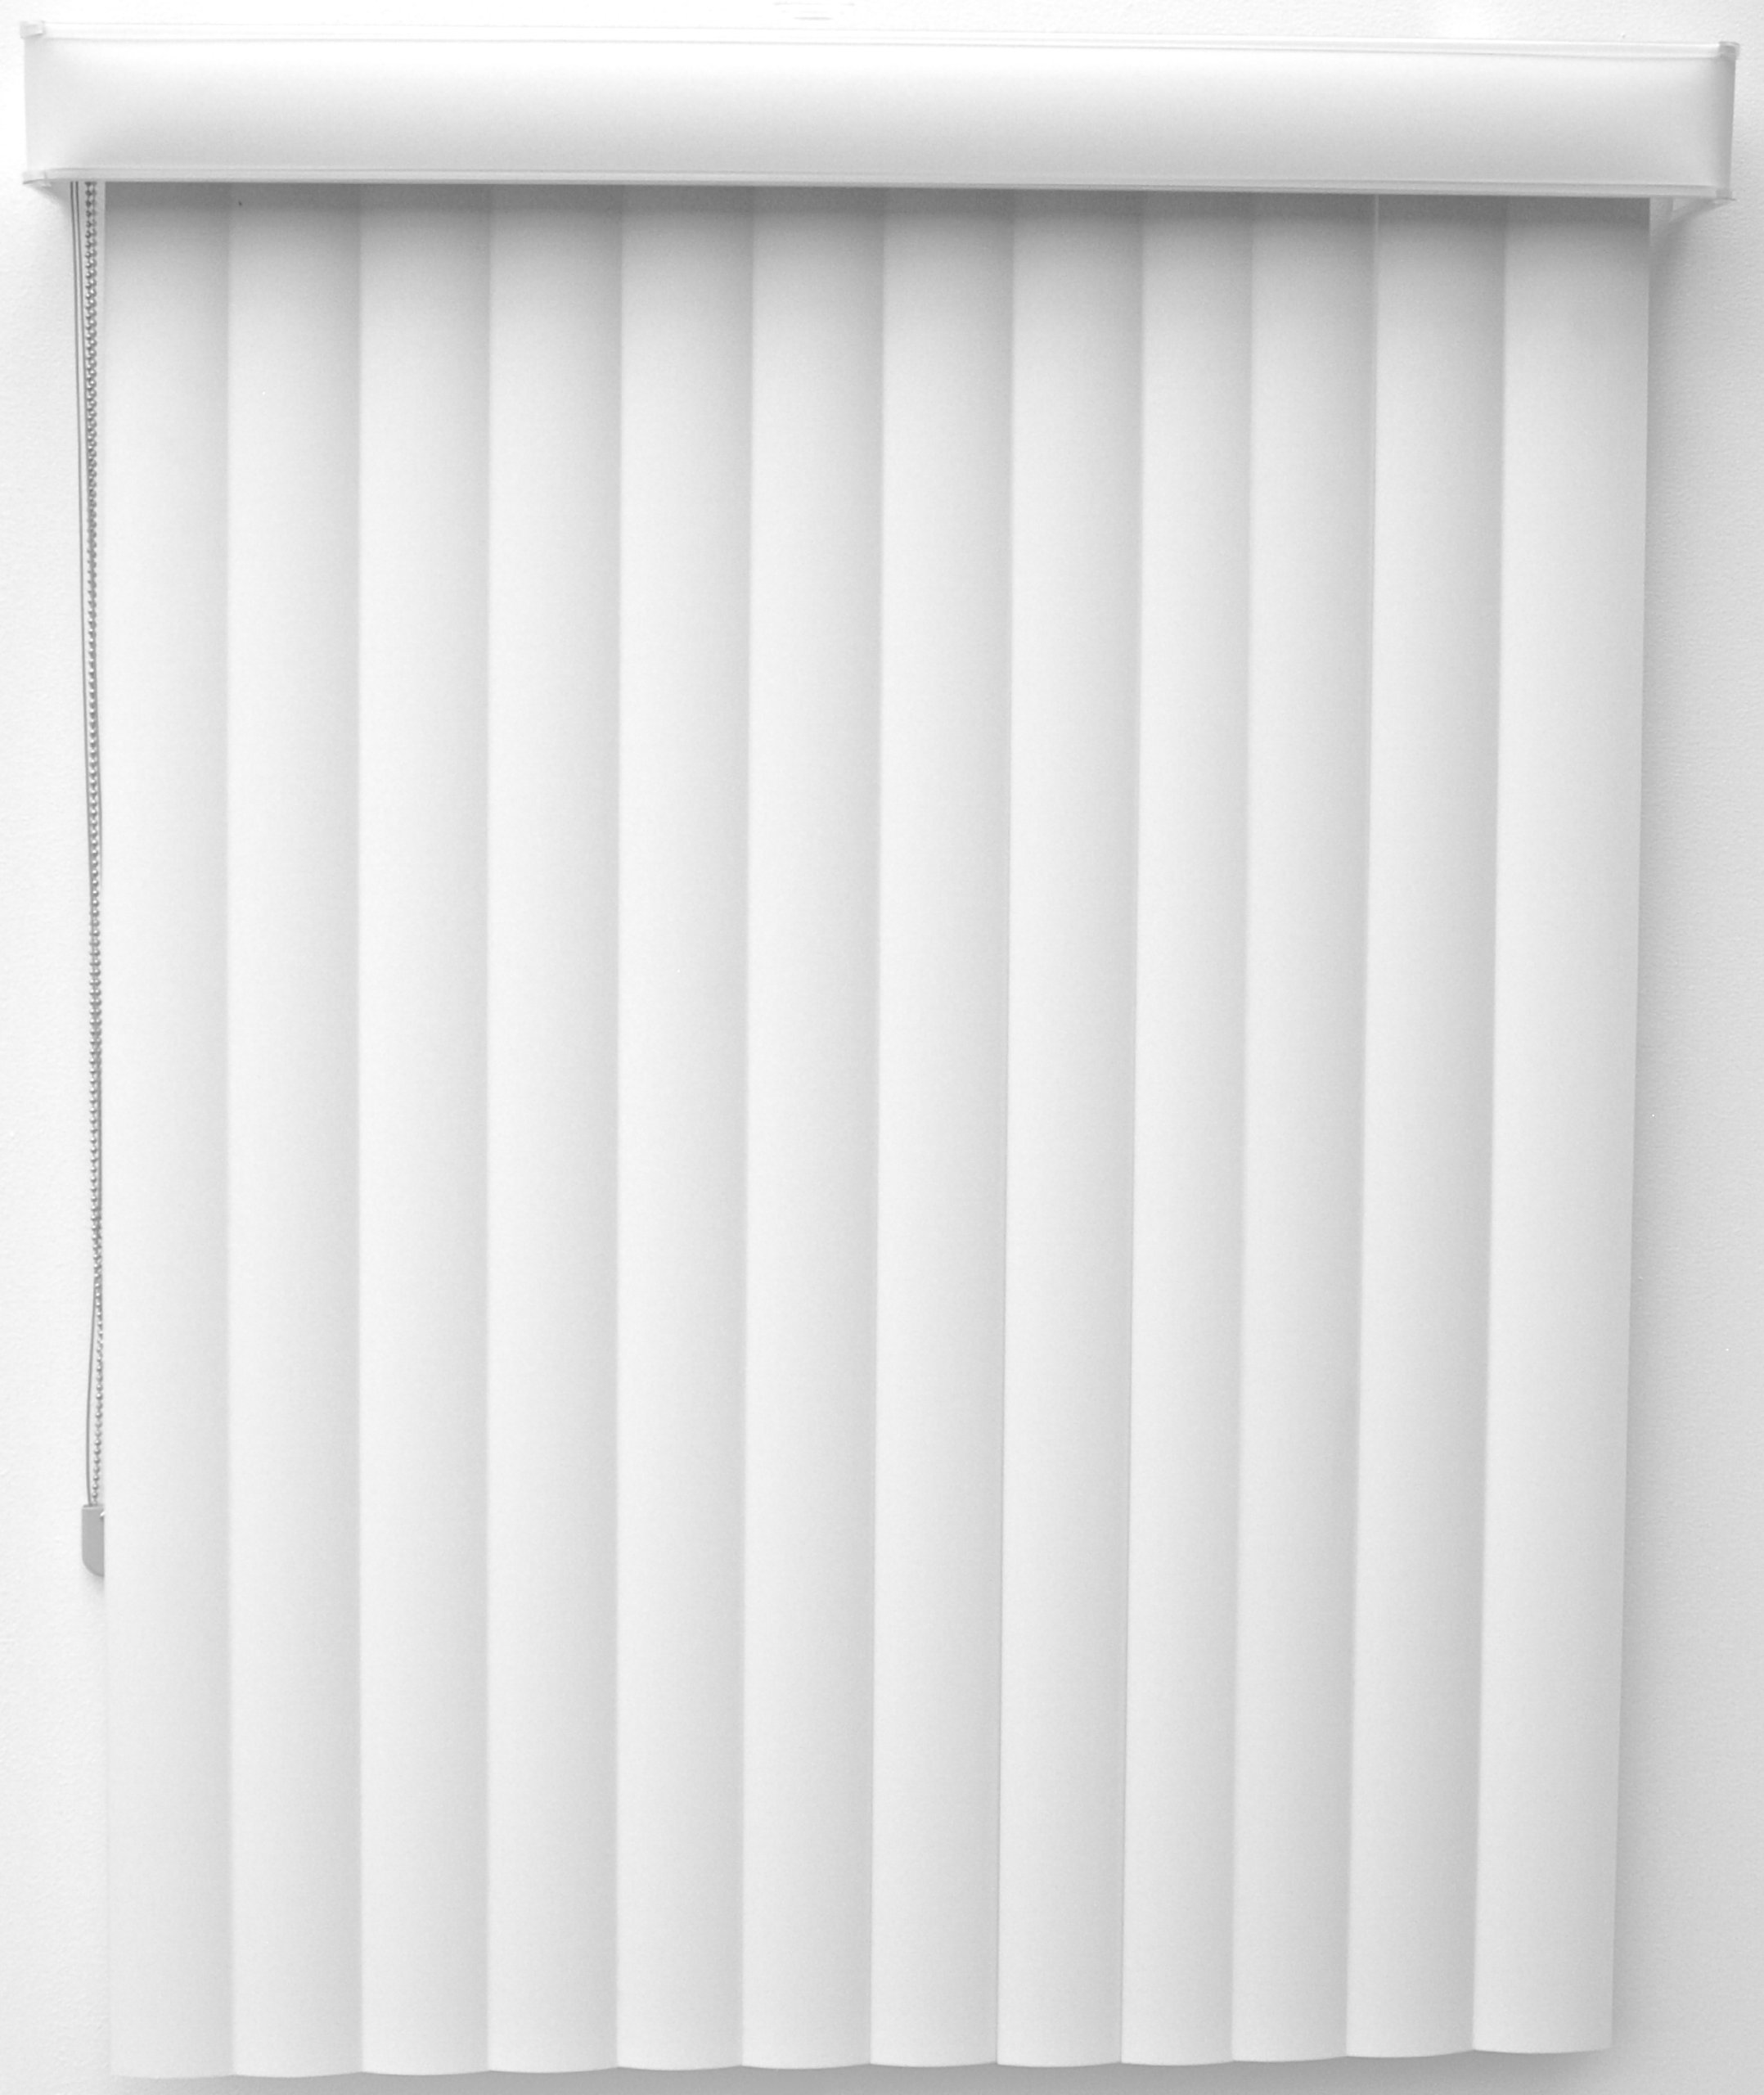 New Age Blinds Curved Vertical Blinds Center Opening, Outside Mount, 120 by 84-1/4-Inch, Polar